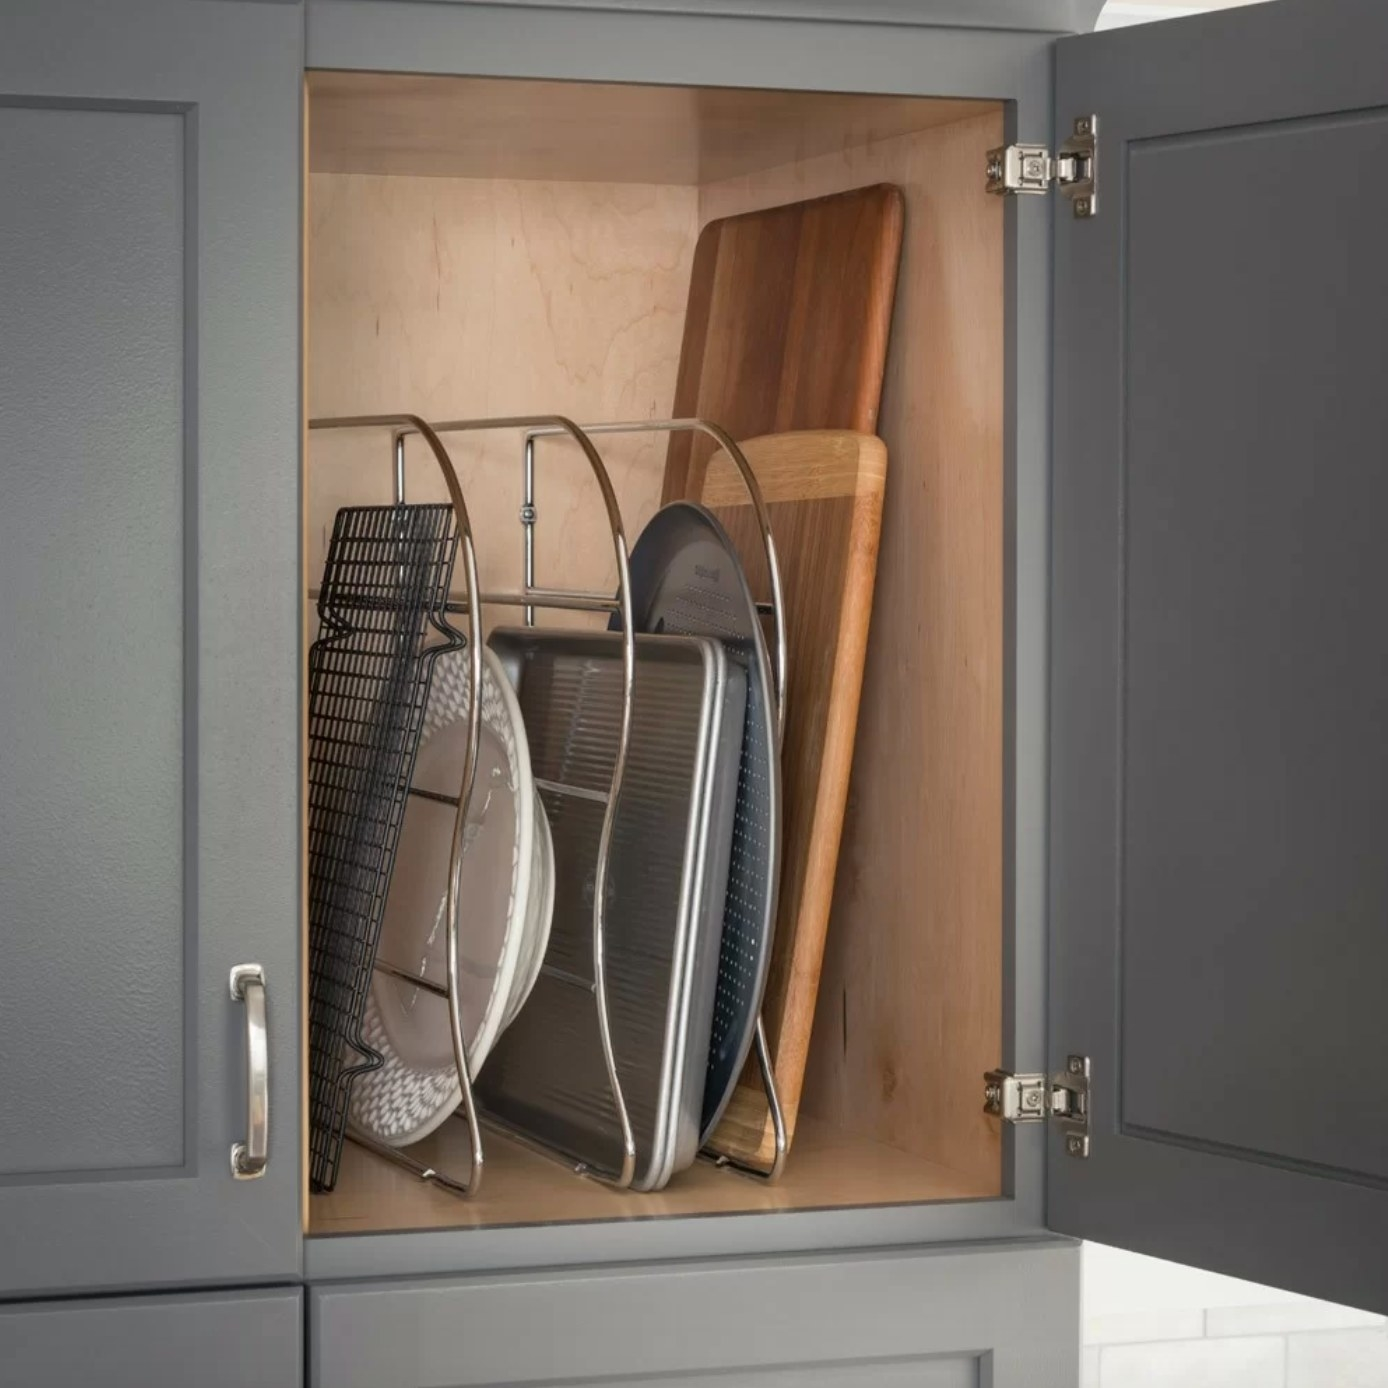 The drawer organizer in silver